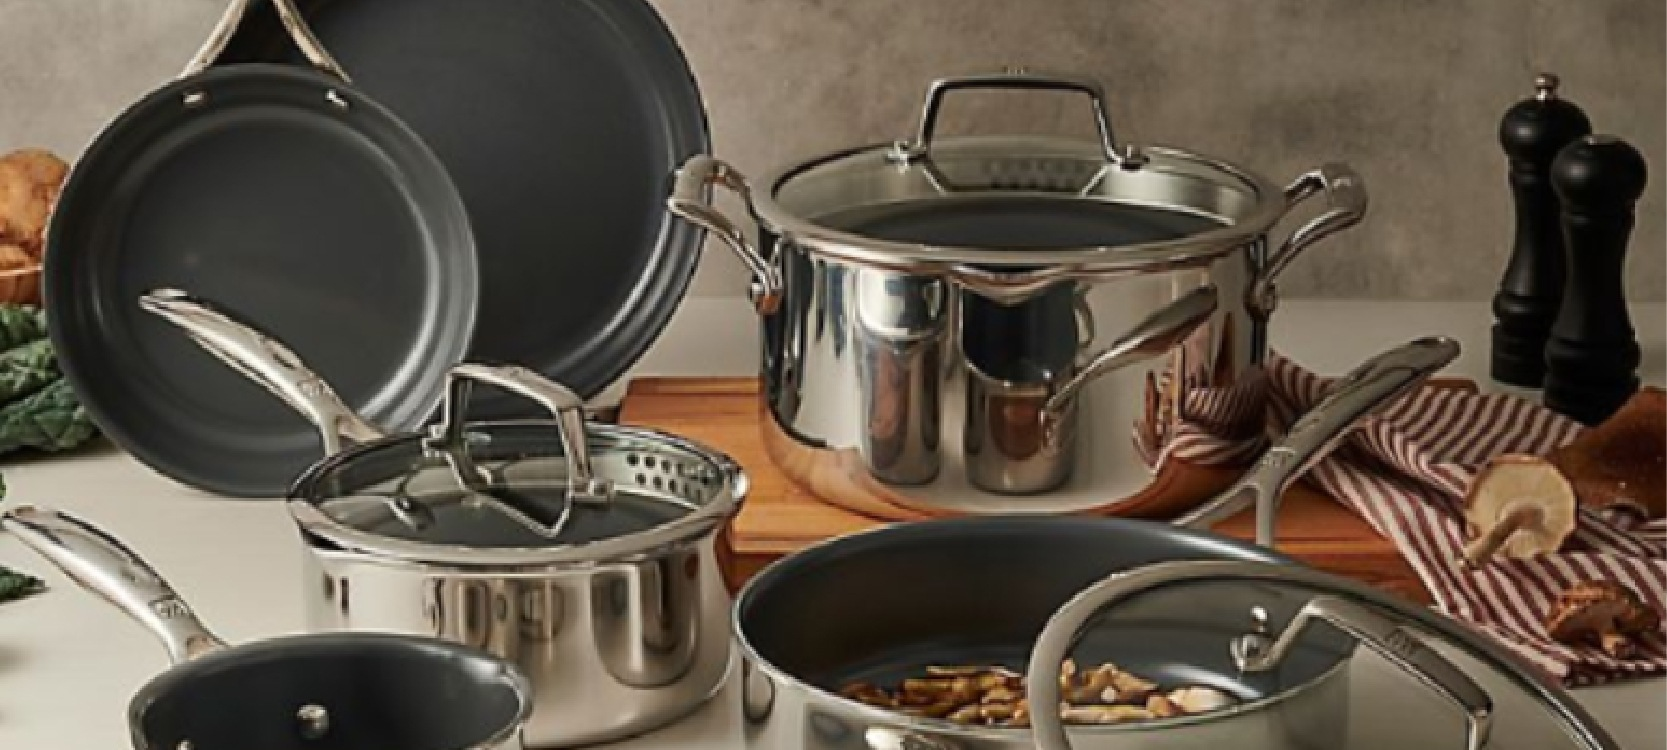 modern and unique Zwilling ceramic cookware placing on the table